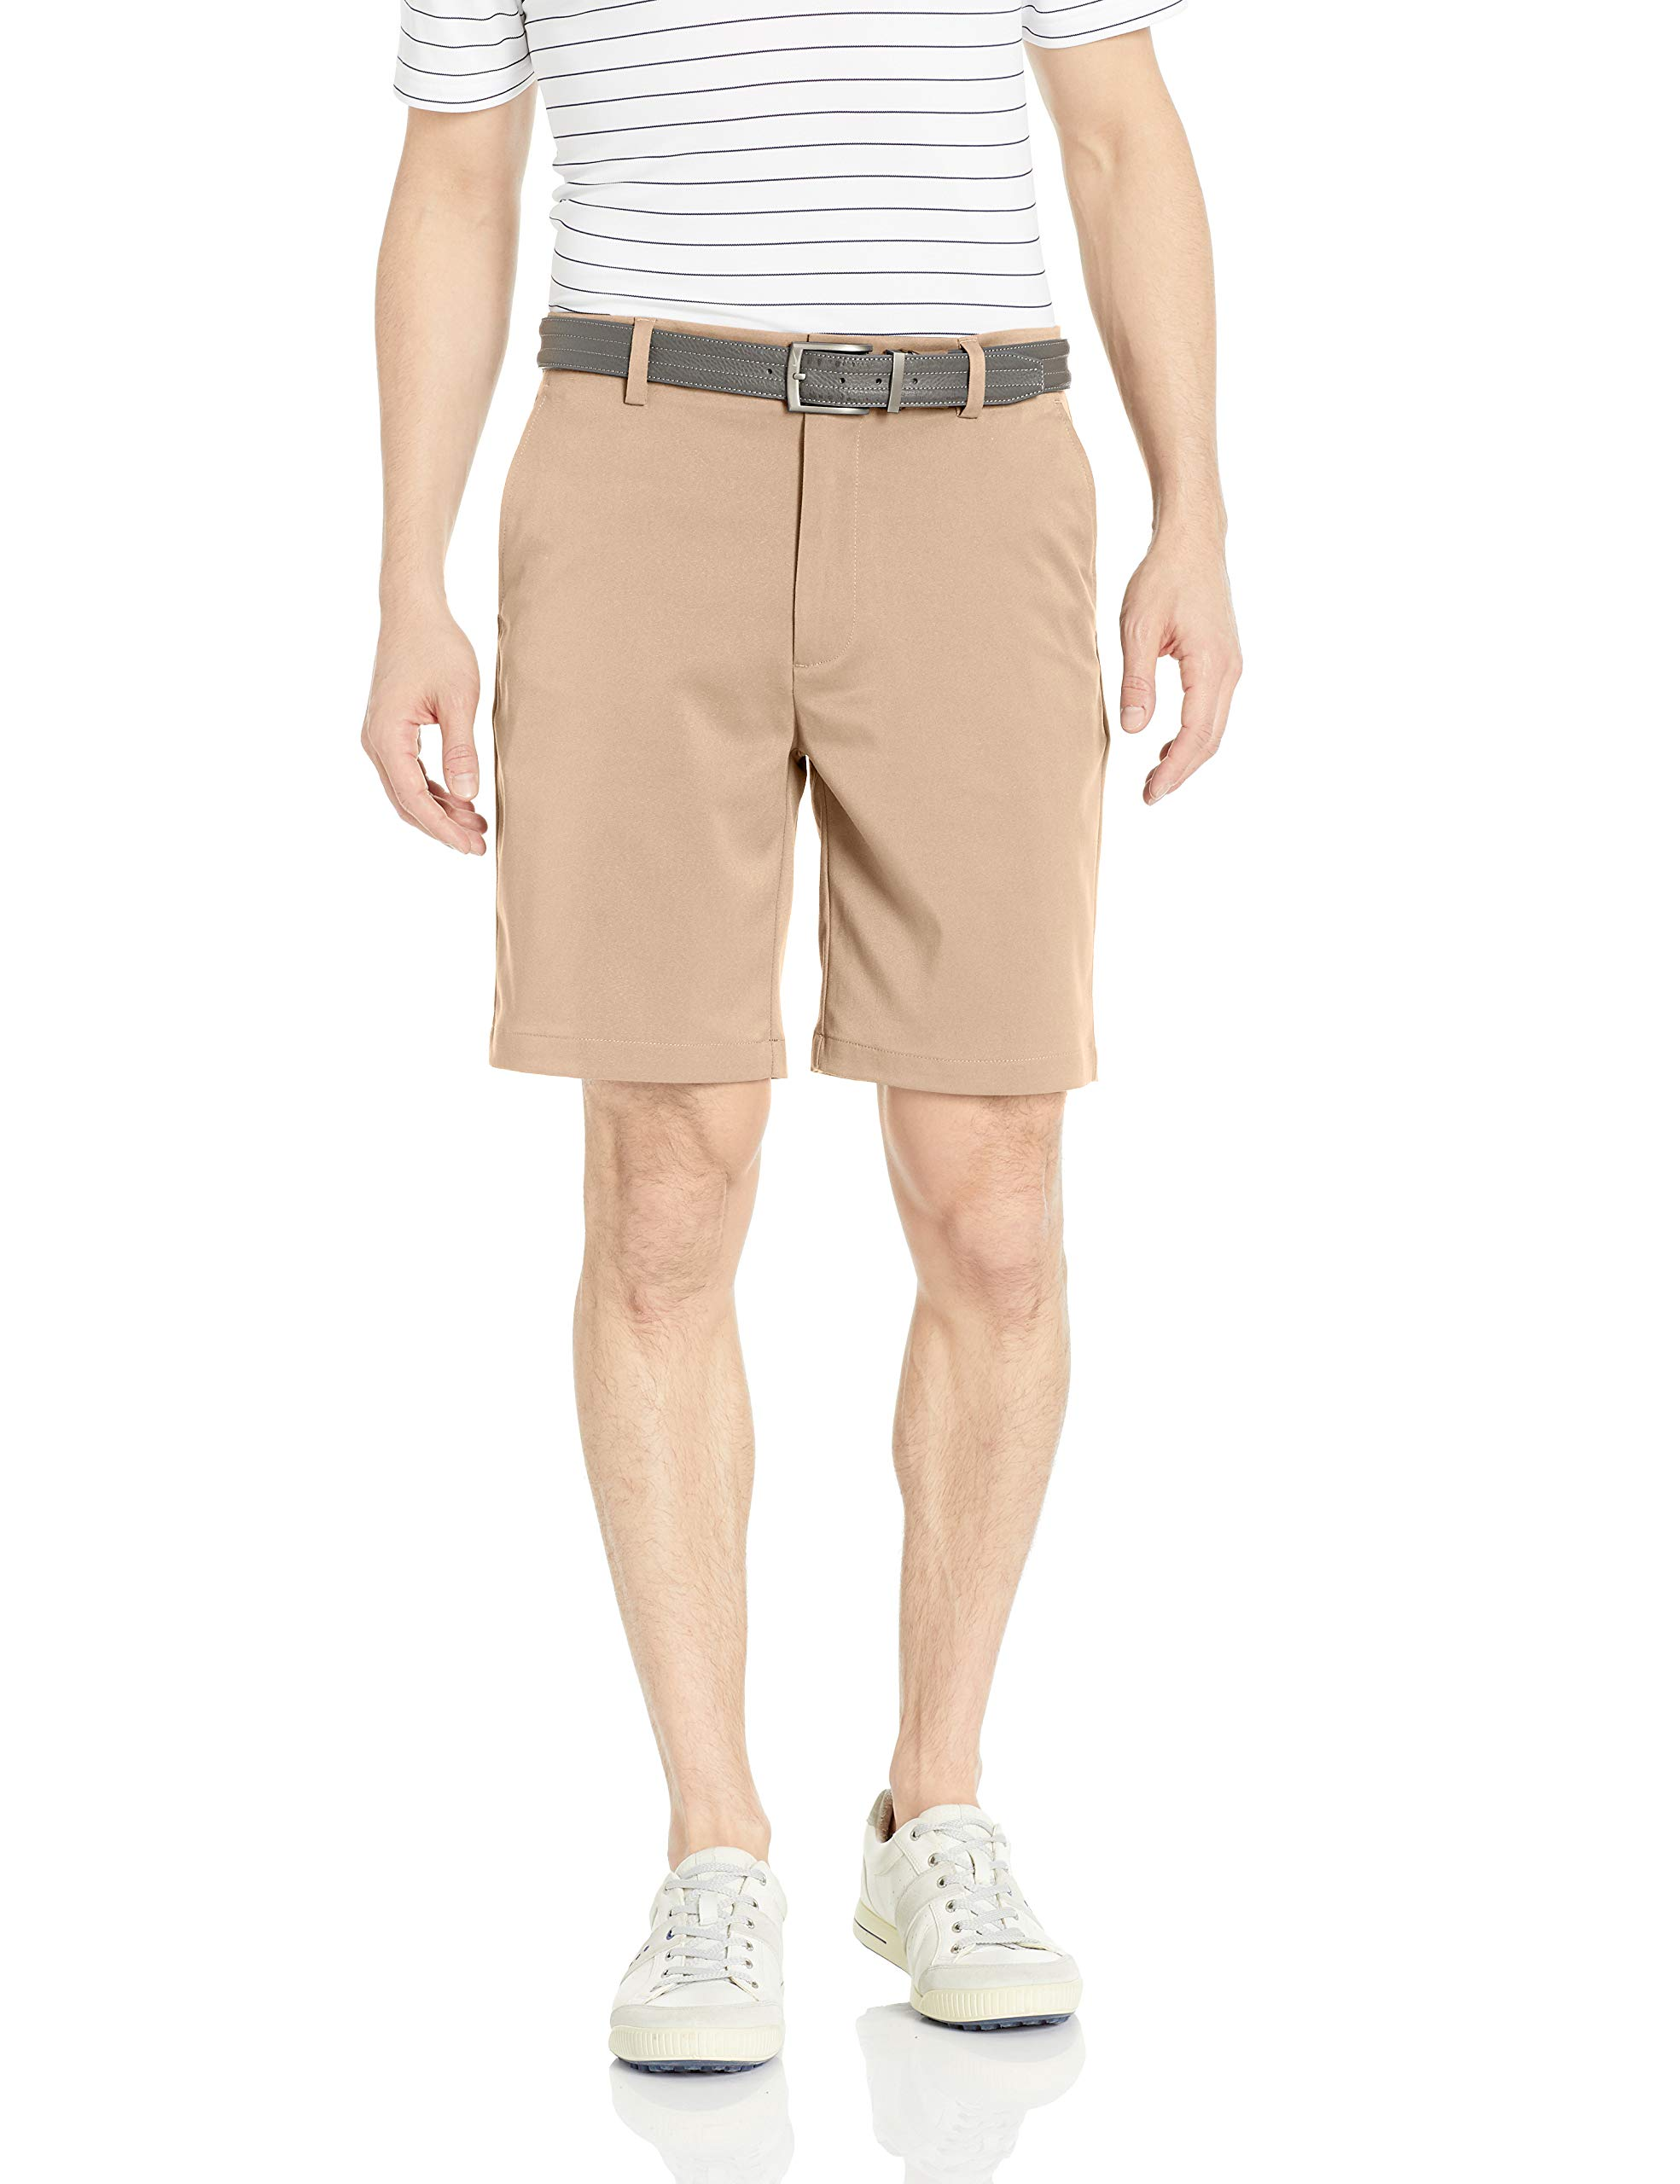 Amazon Essentials Men's Standard Classic-Fit Stretch Golf Short, Khaki, 30 by Amazon Essentials